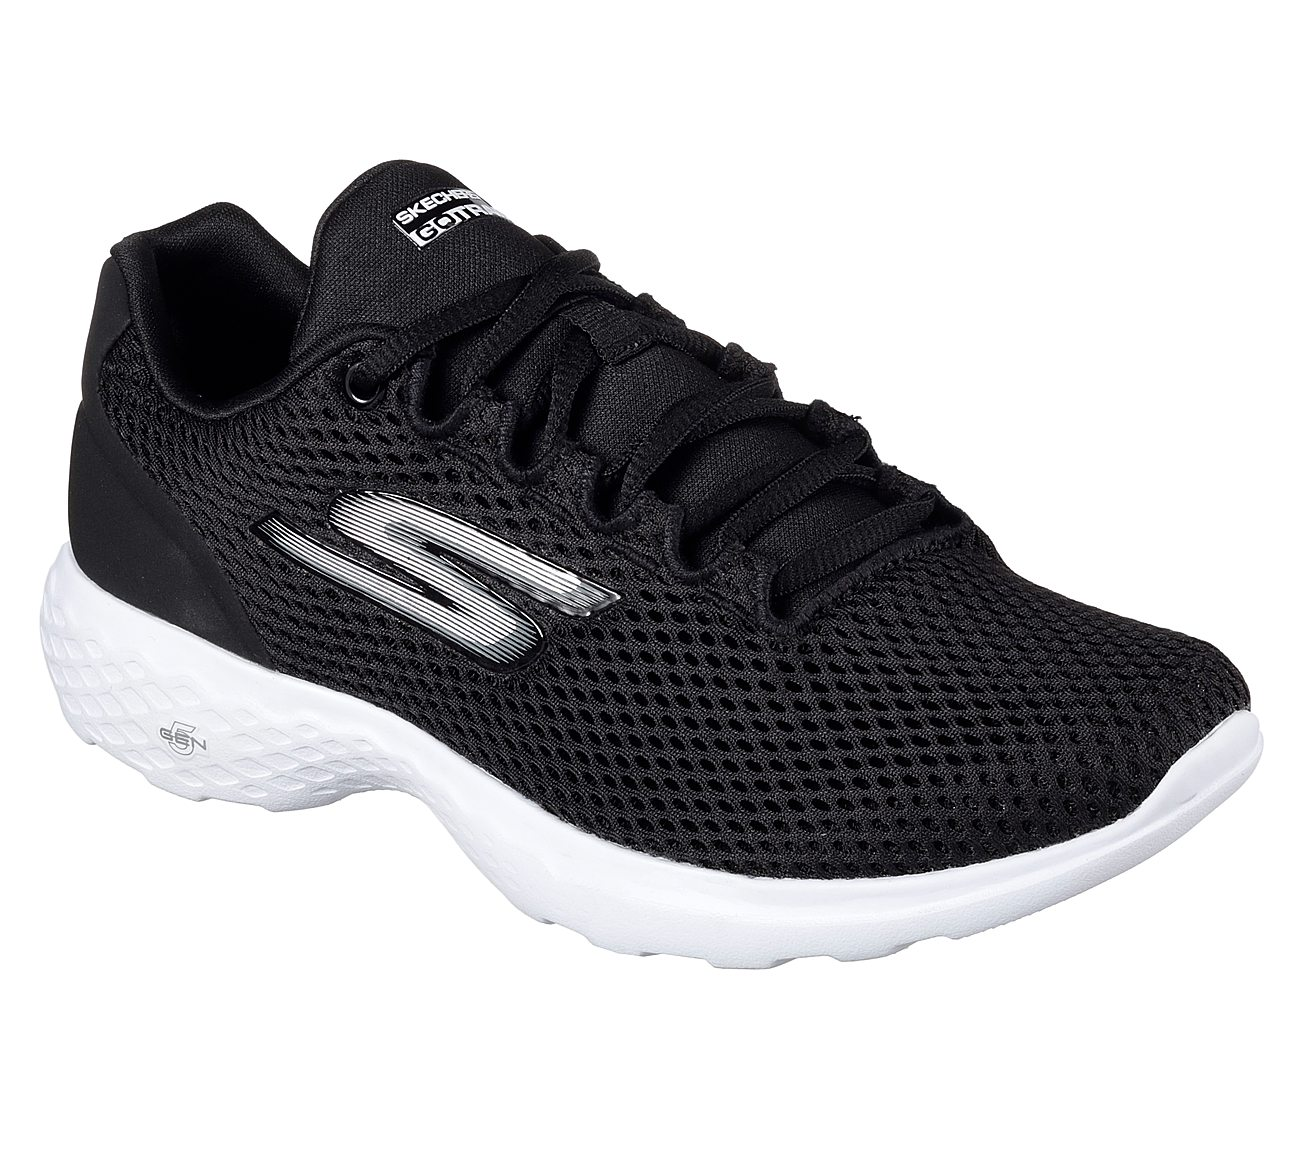 Cheap skechers go train review \u003eFree